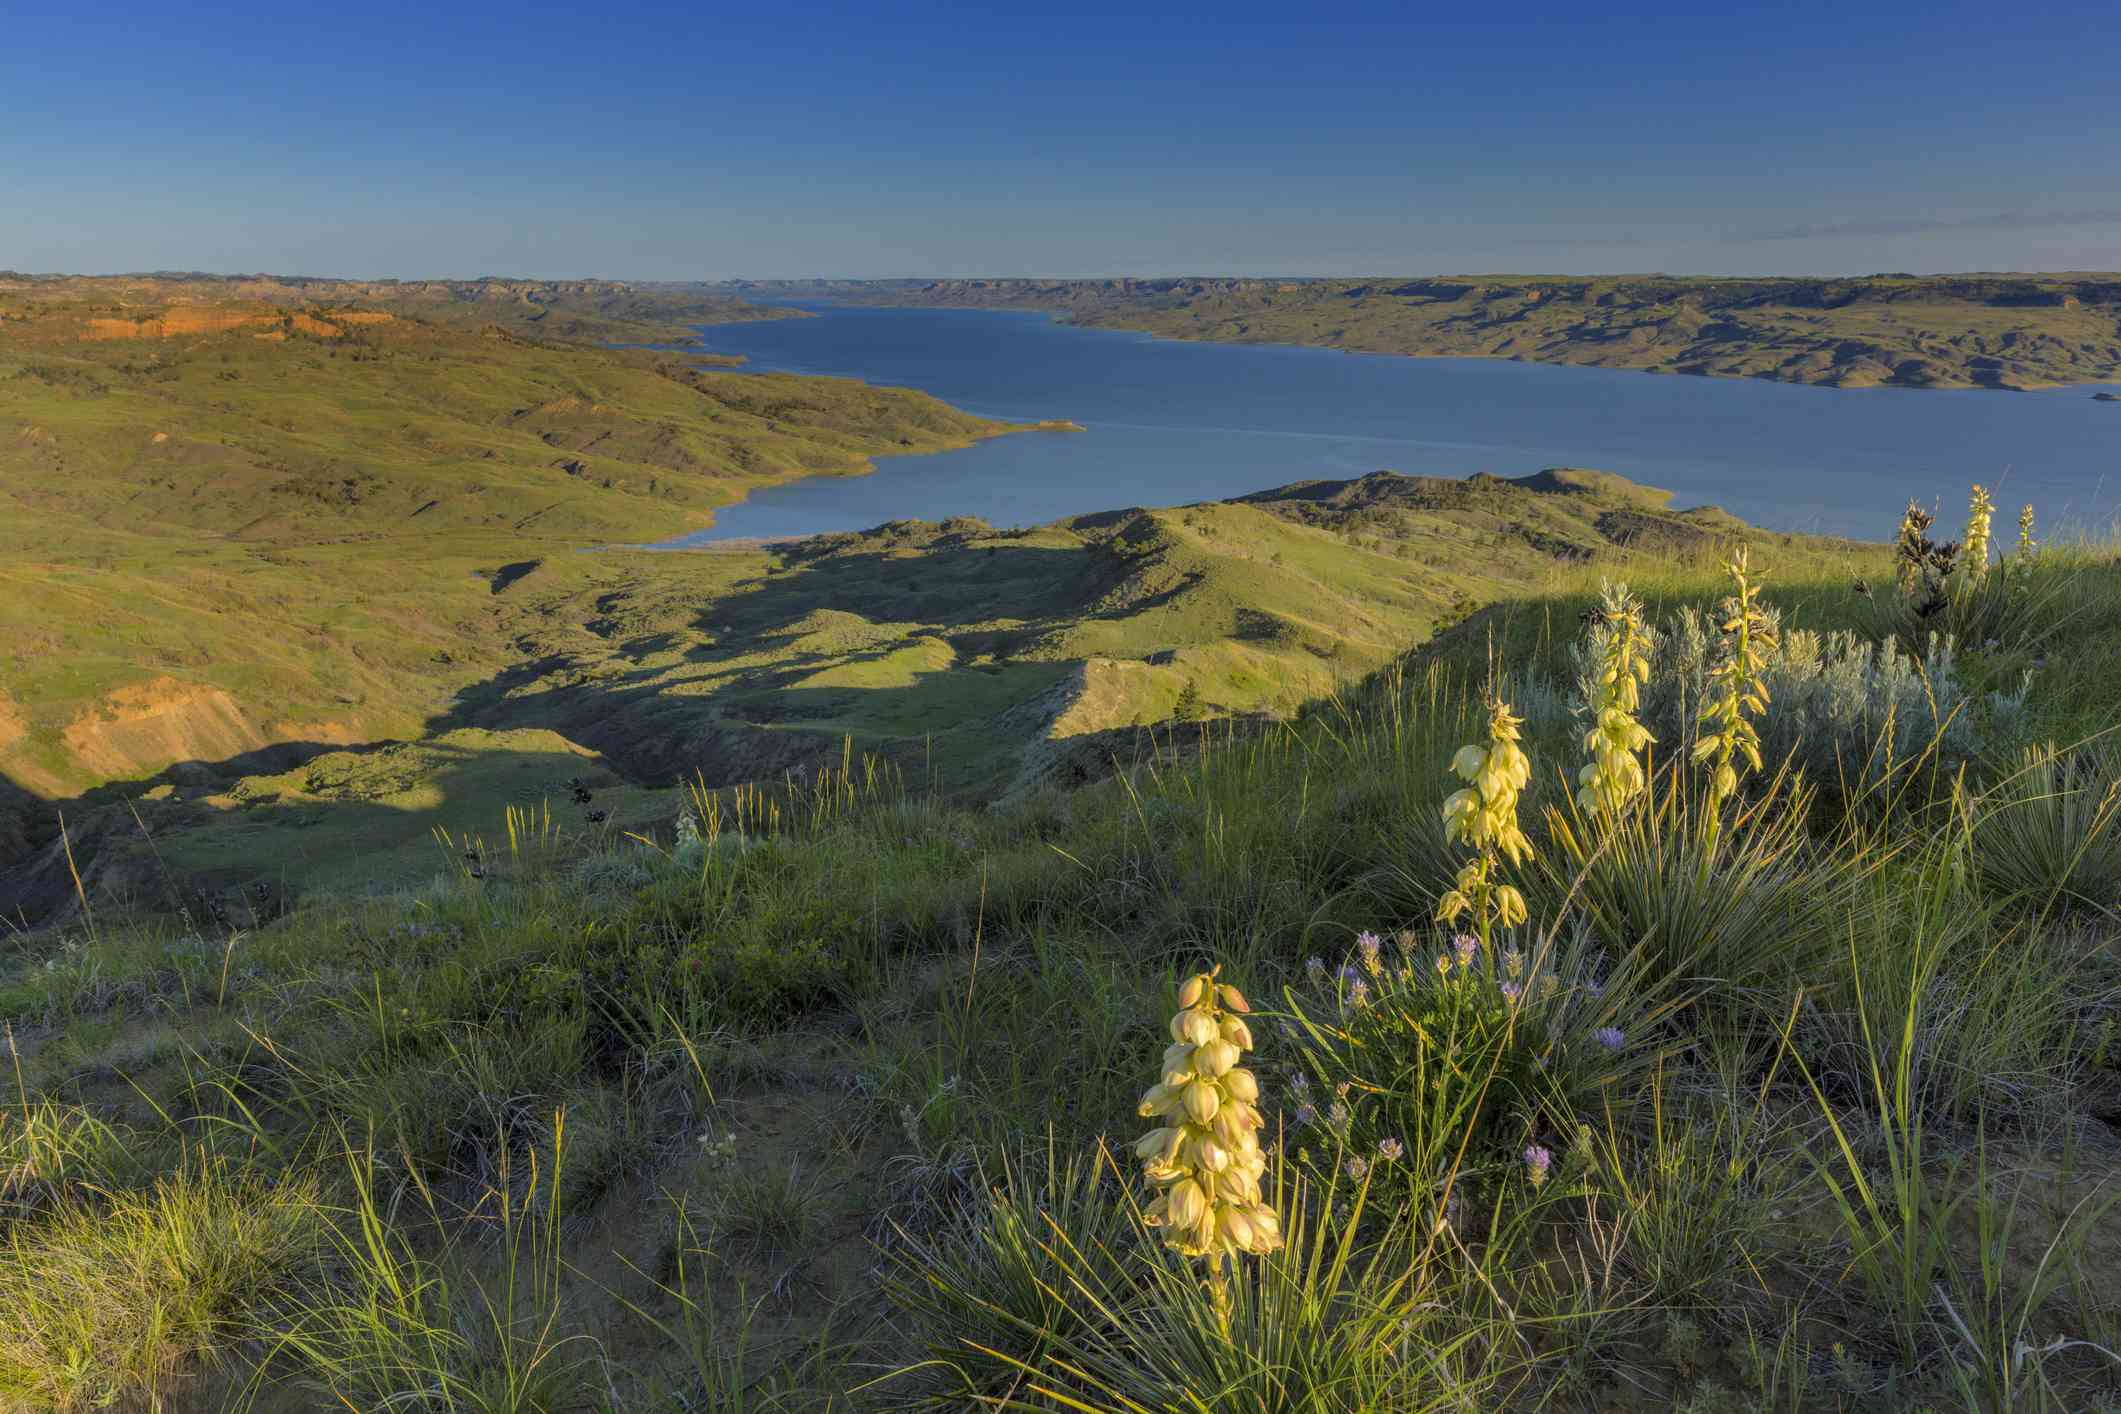 Plain landscape with lake and yucca (Yucca) flowers in foreground, Fort Peck Reservoir, Charles M. Russell National Wildlife Refuge, Montana, USA